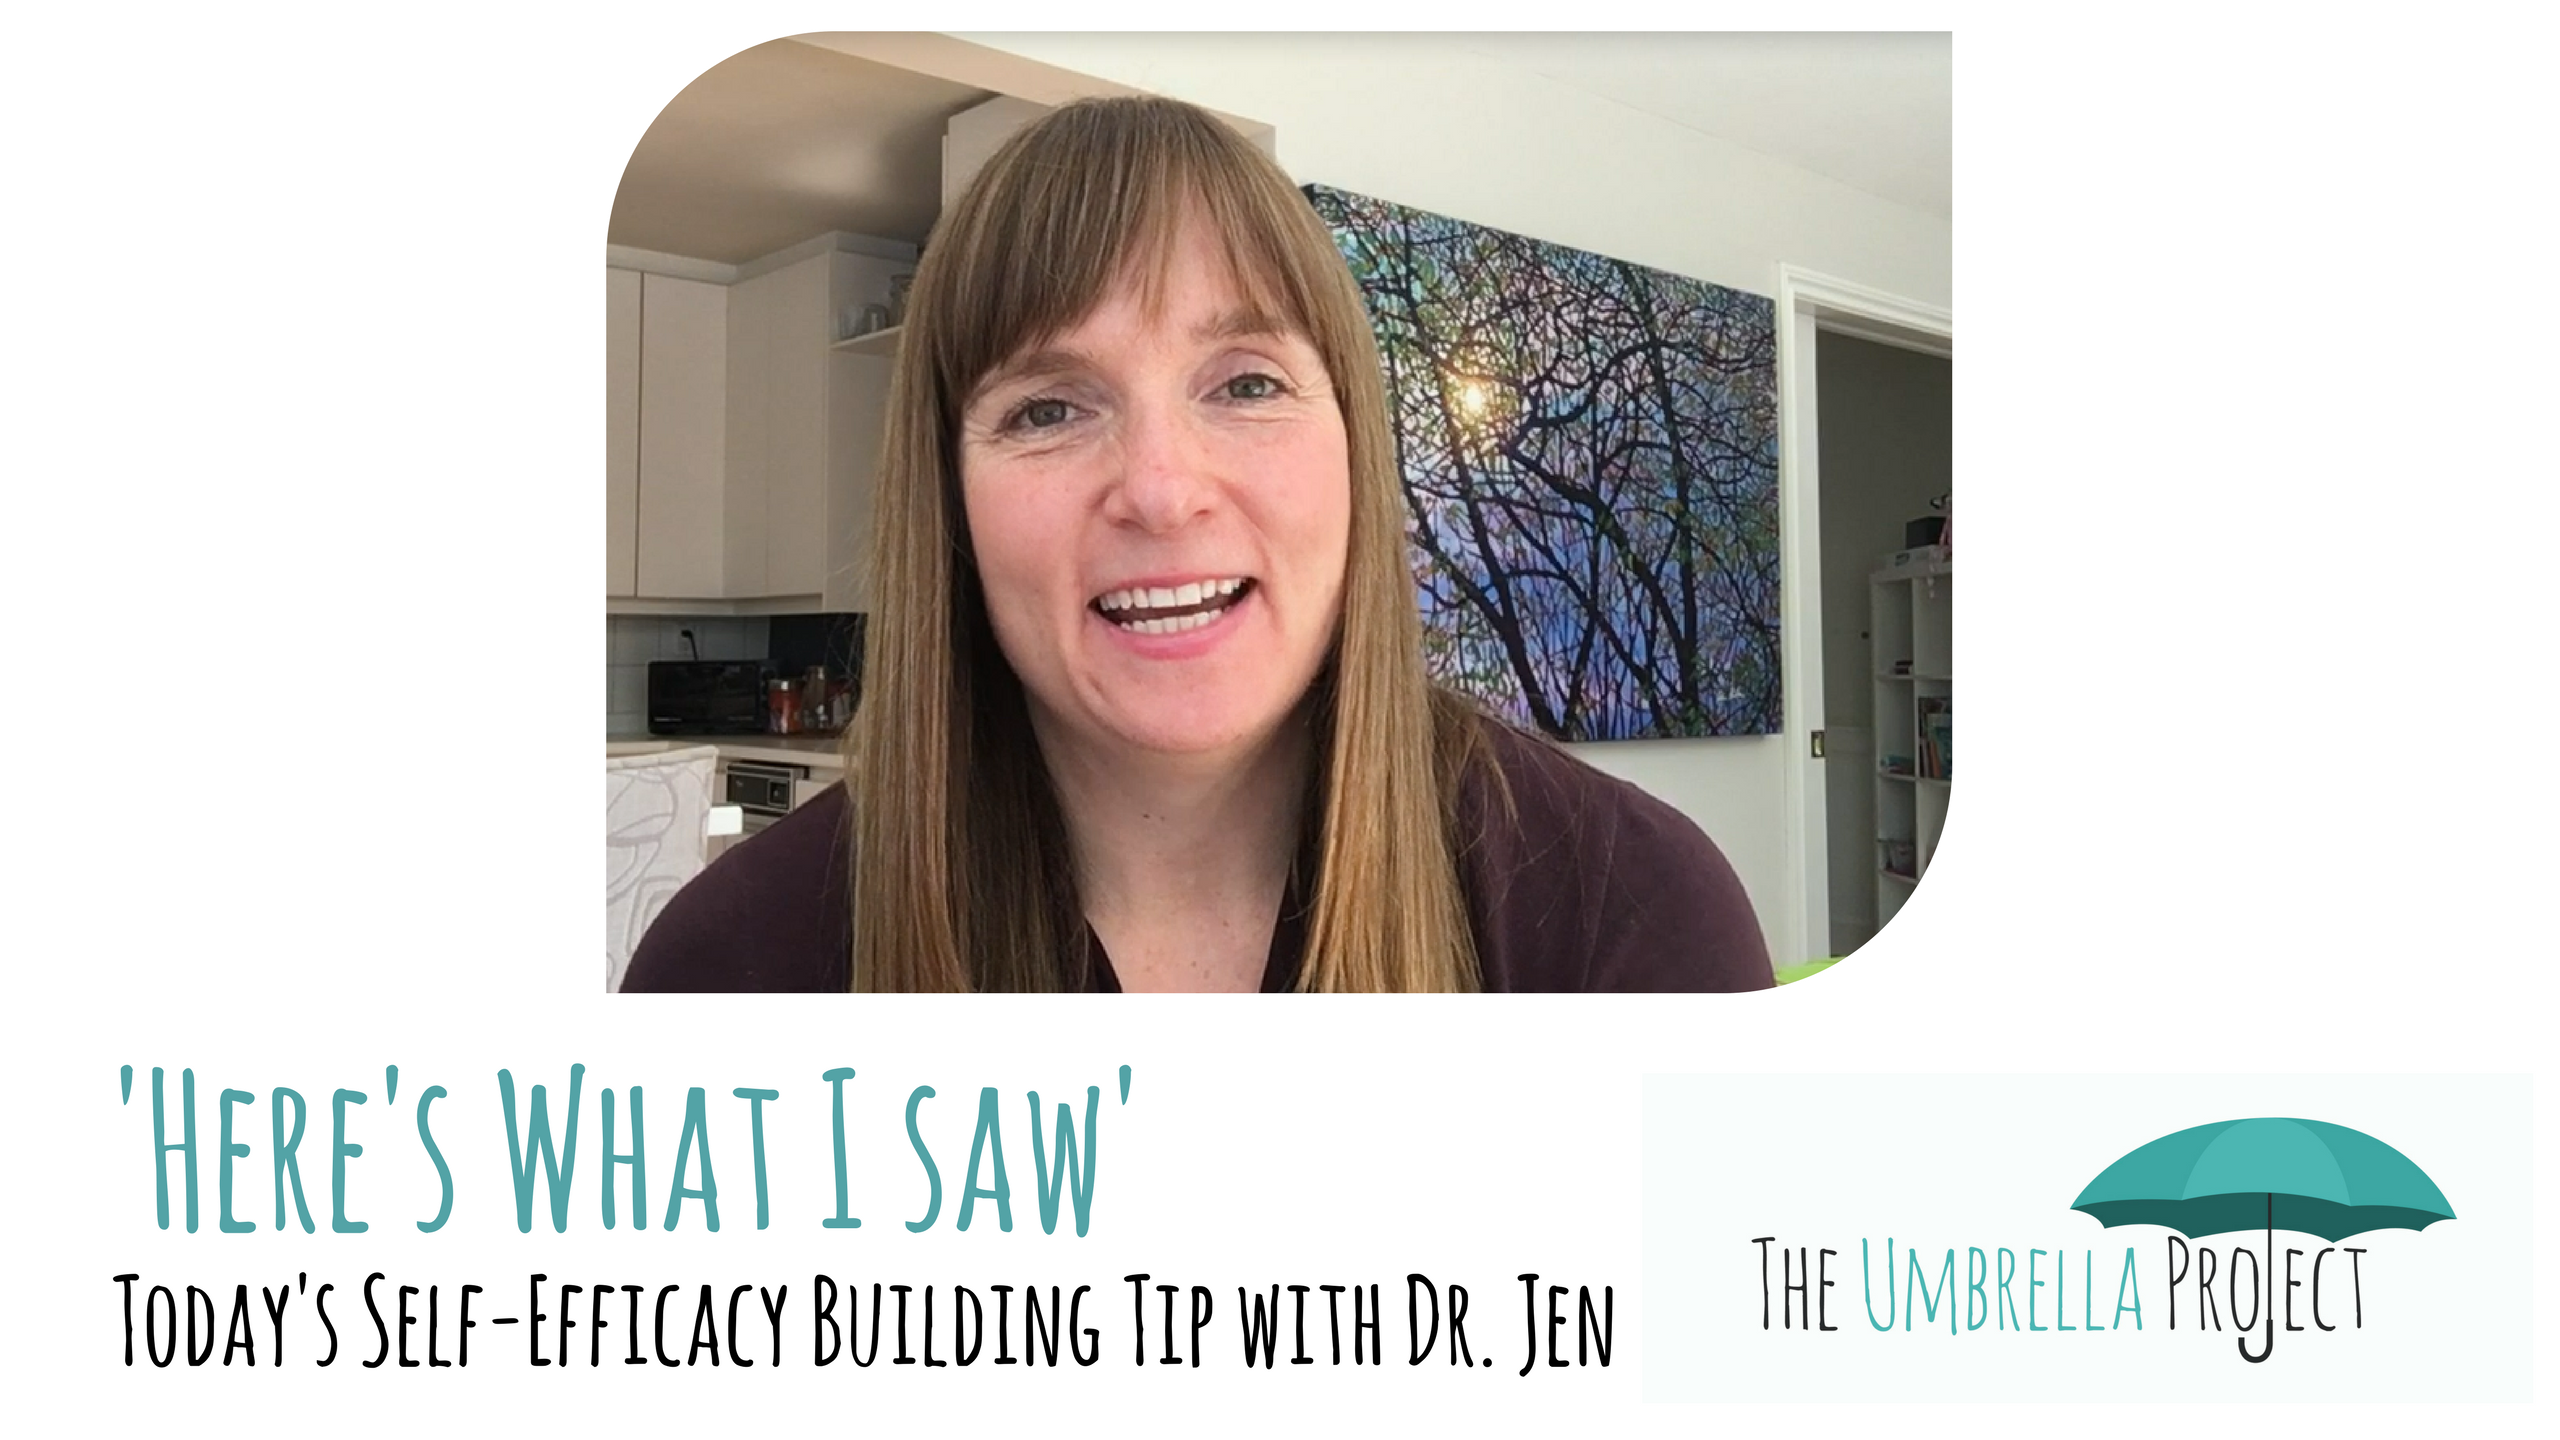 'Here's What I Saw': Today's Self-Efficacy Building Tip with Dr. Jen